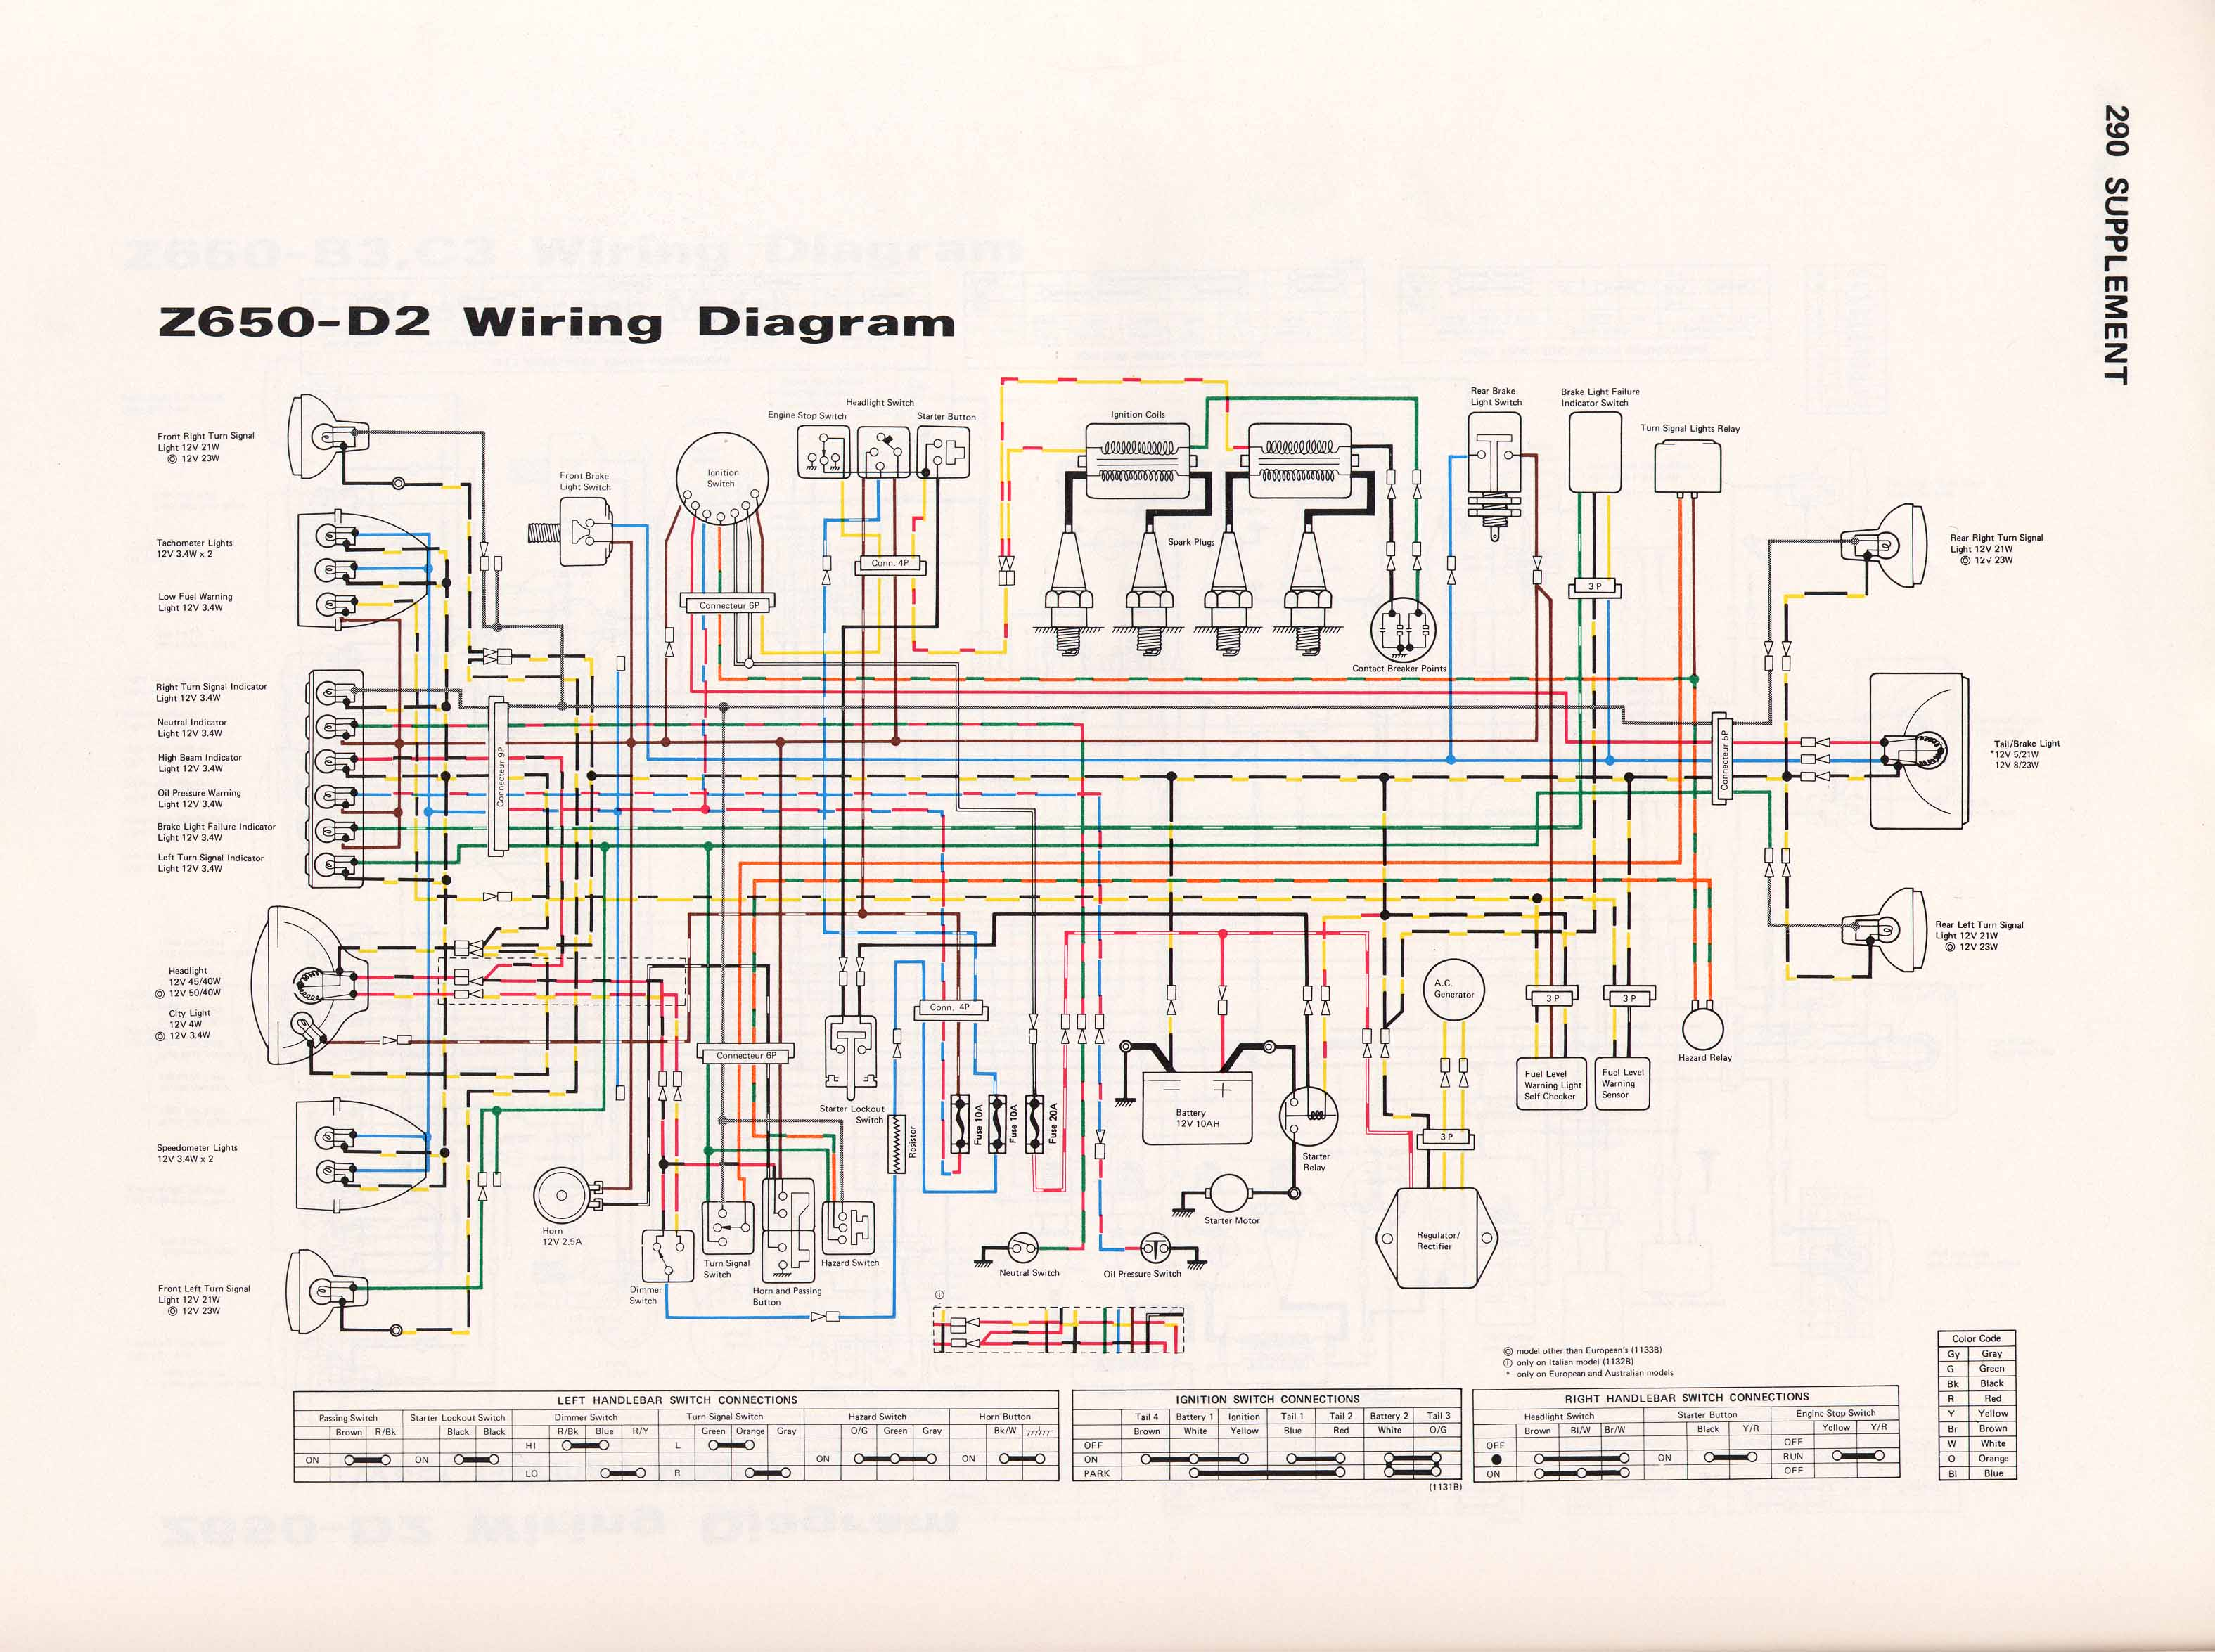 Kawasaki Z650 Wiring Diagram Data Bayou 220 Manual